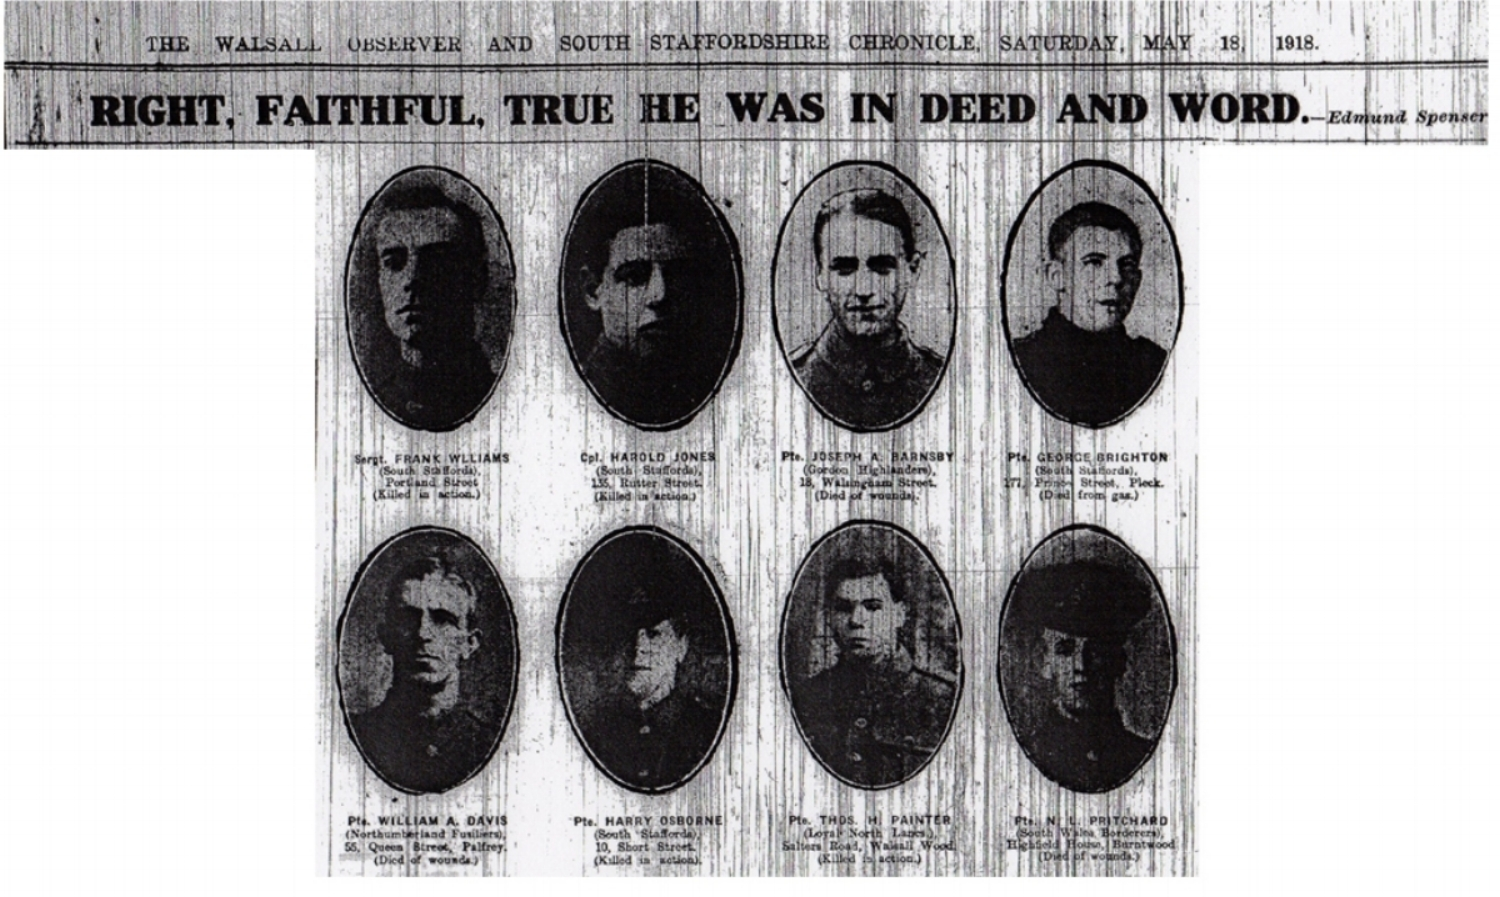 Extract from the 18 May 1918 edition of the Walsall Observer & South Staffordshire Chronicle recording the death of Nonnie Lysons Pritchard on the Western Front.